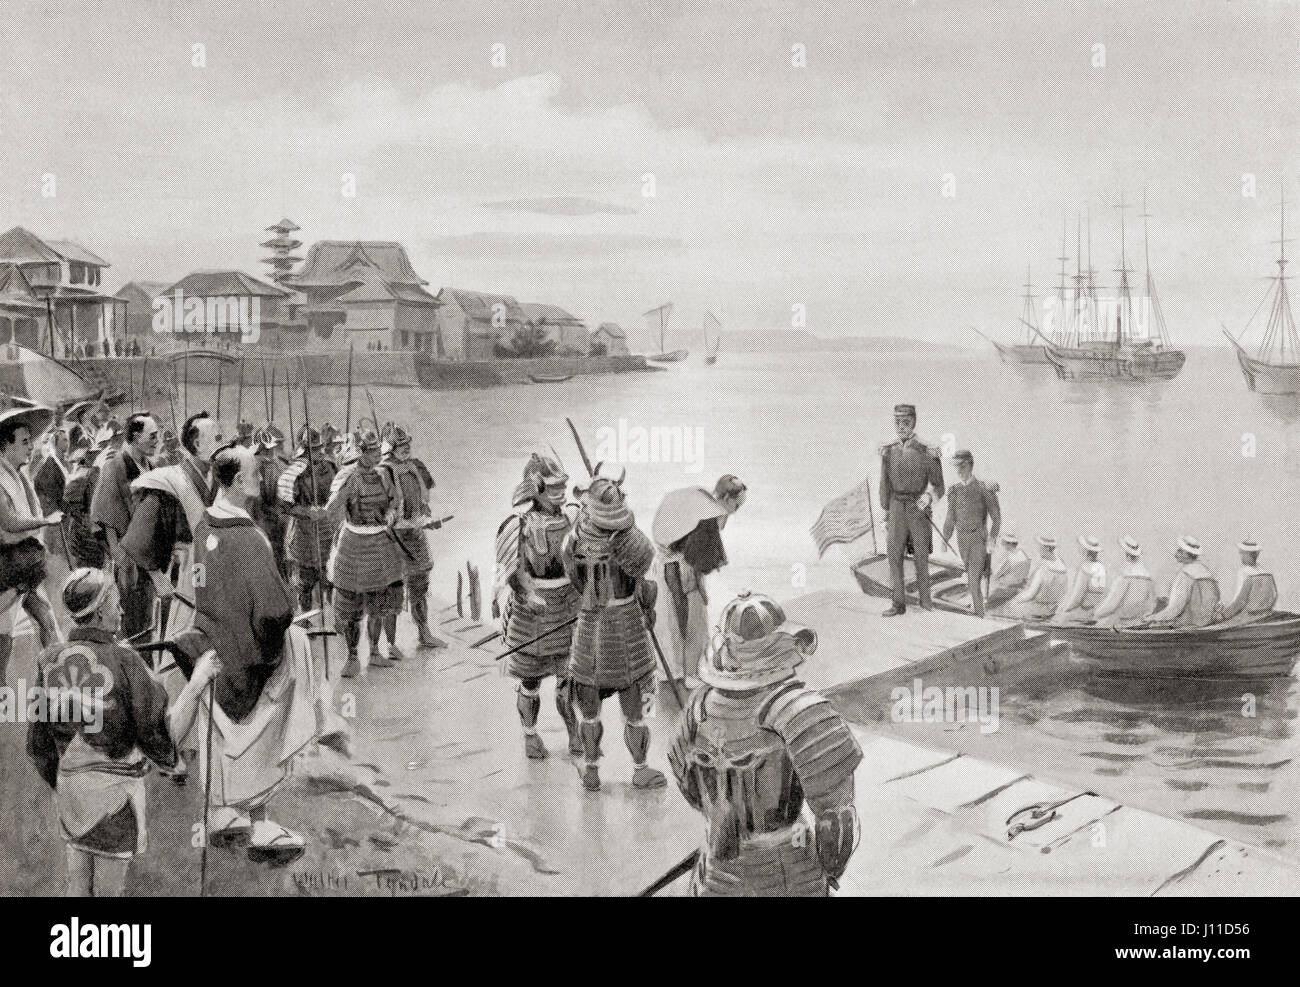 The landing of Admiral Perry in Tokio Harbour,Japan, July 8th, 1853.  Matthew Calbraith Perry, 1794 – 1858. Commodore of the United States Navy  who played a ...